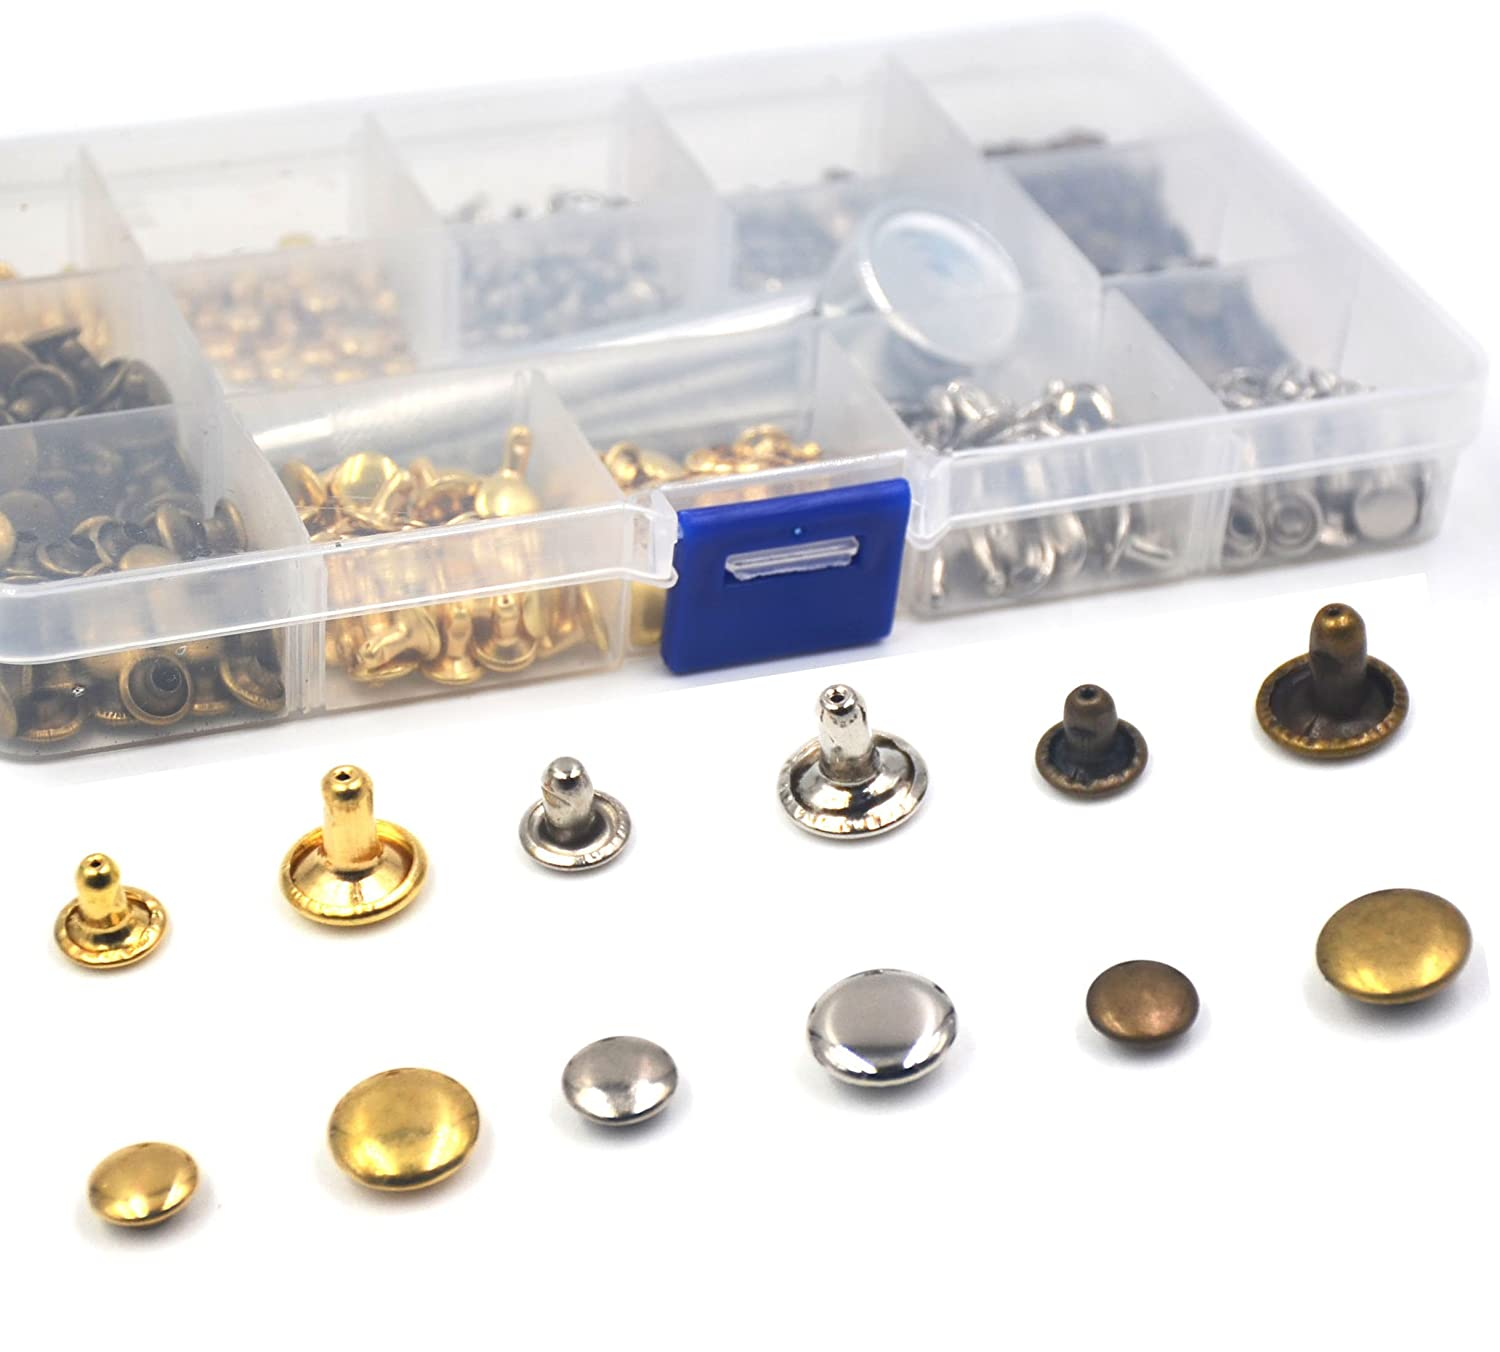 IRISFLY 240 Pcs Leather Rivets Double Cap Rivet Tubular Metal Studs with 3 Fixing Tool Kit for Leather Craft Repairing Decoration,2 Sizes(6mm,8mm) and 3 Colors (Gold, Silver and Bronze)